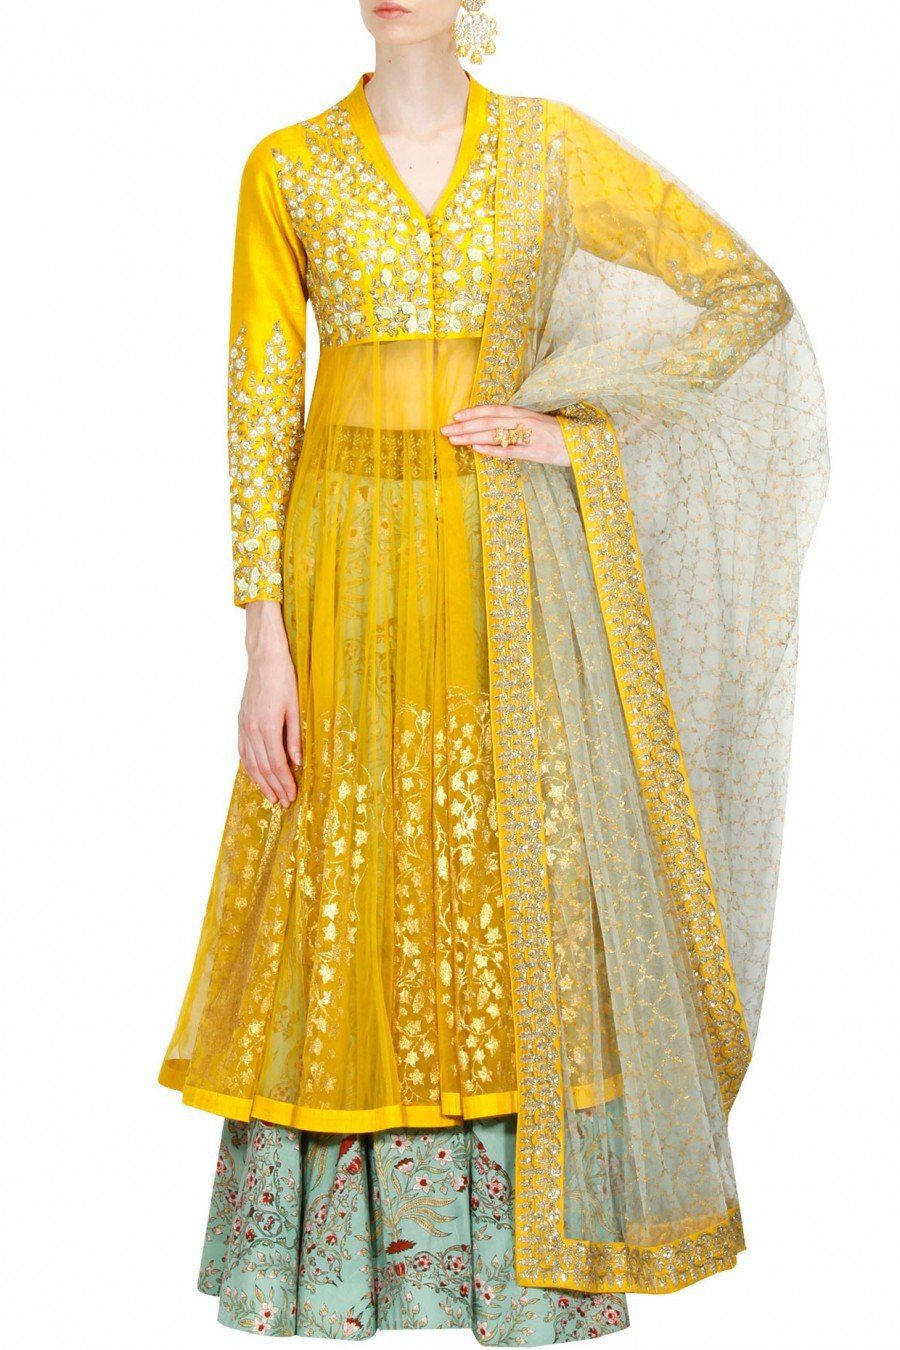 eaaf6317aac1 Featuring this yellow sharara set with floral threadwork and gold dabka  embroidery on the yoke and sleeves.